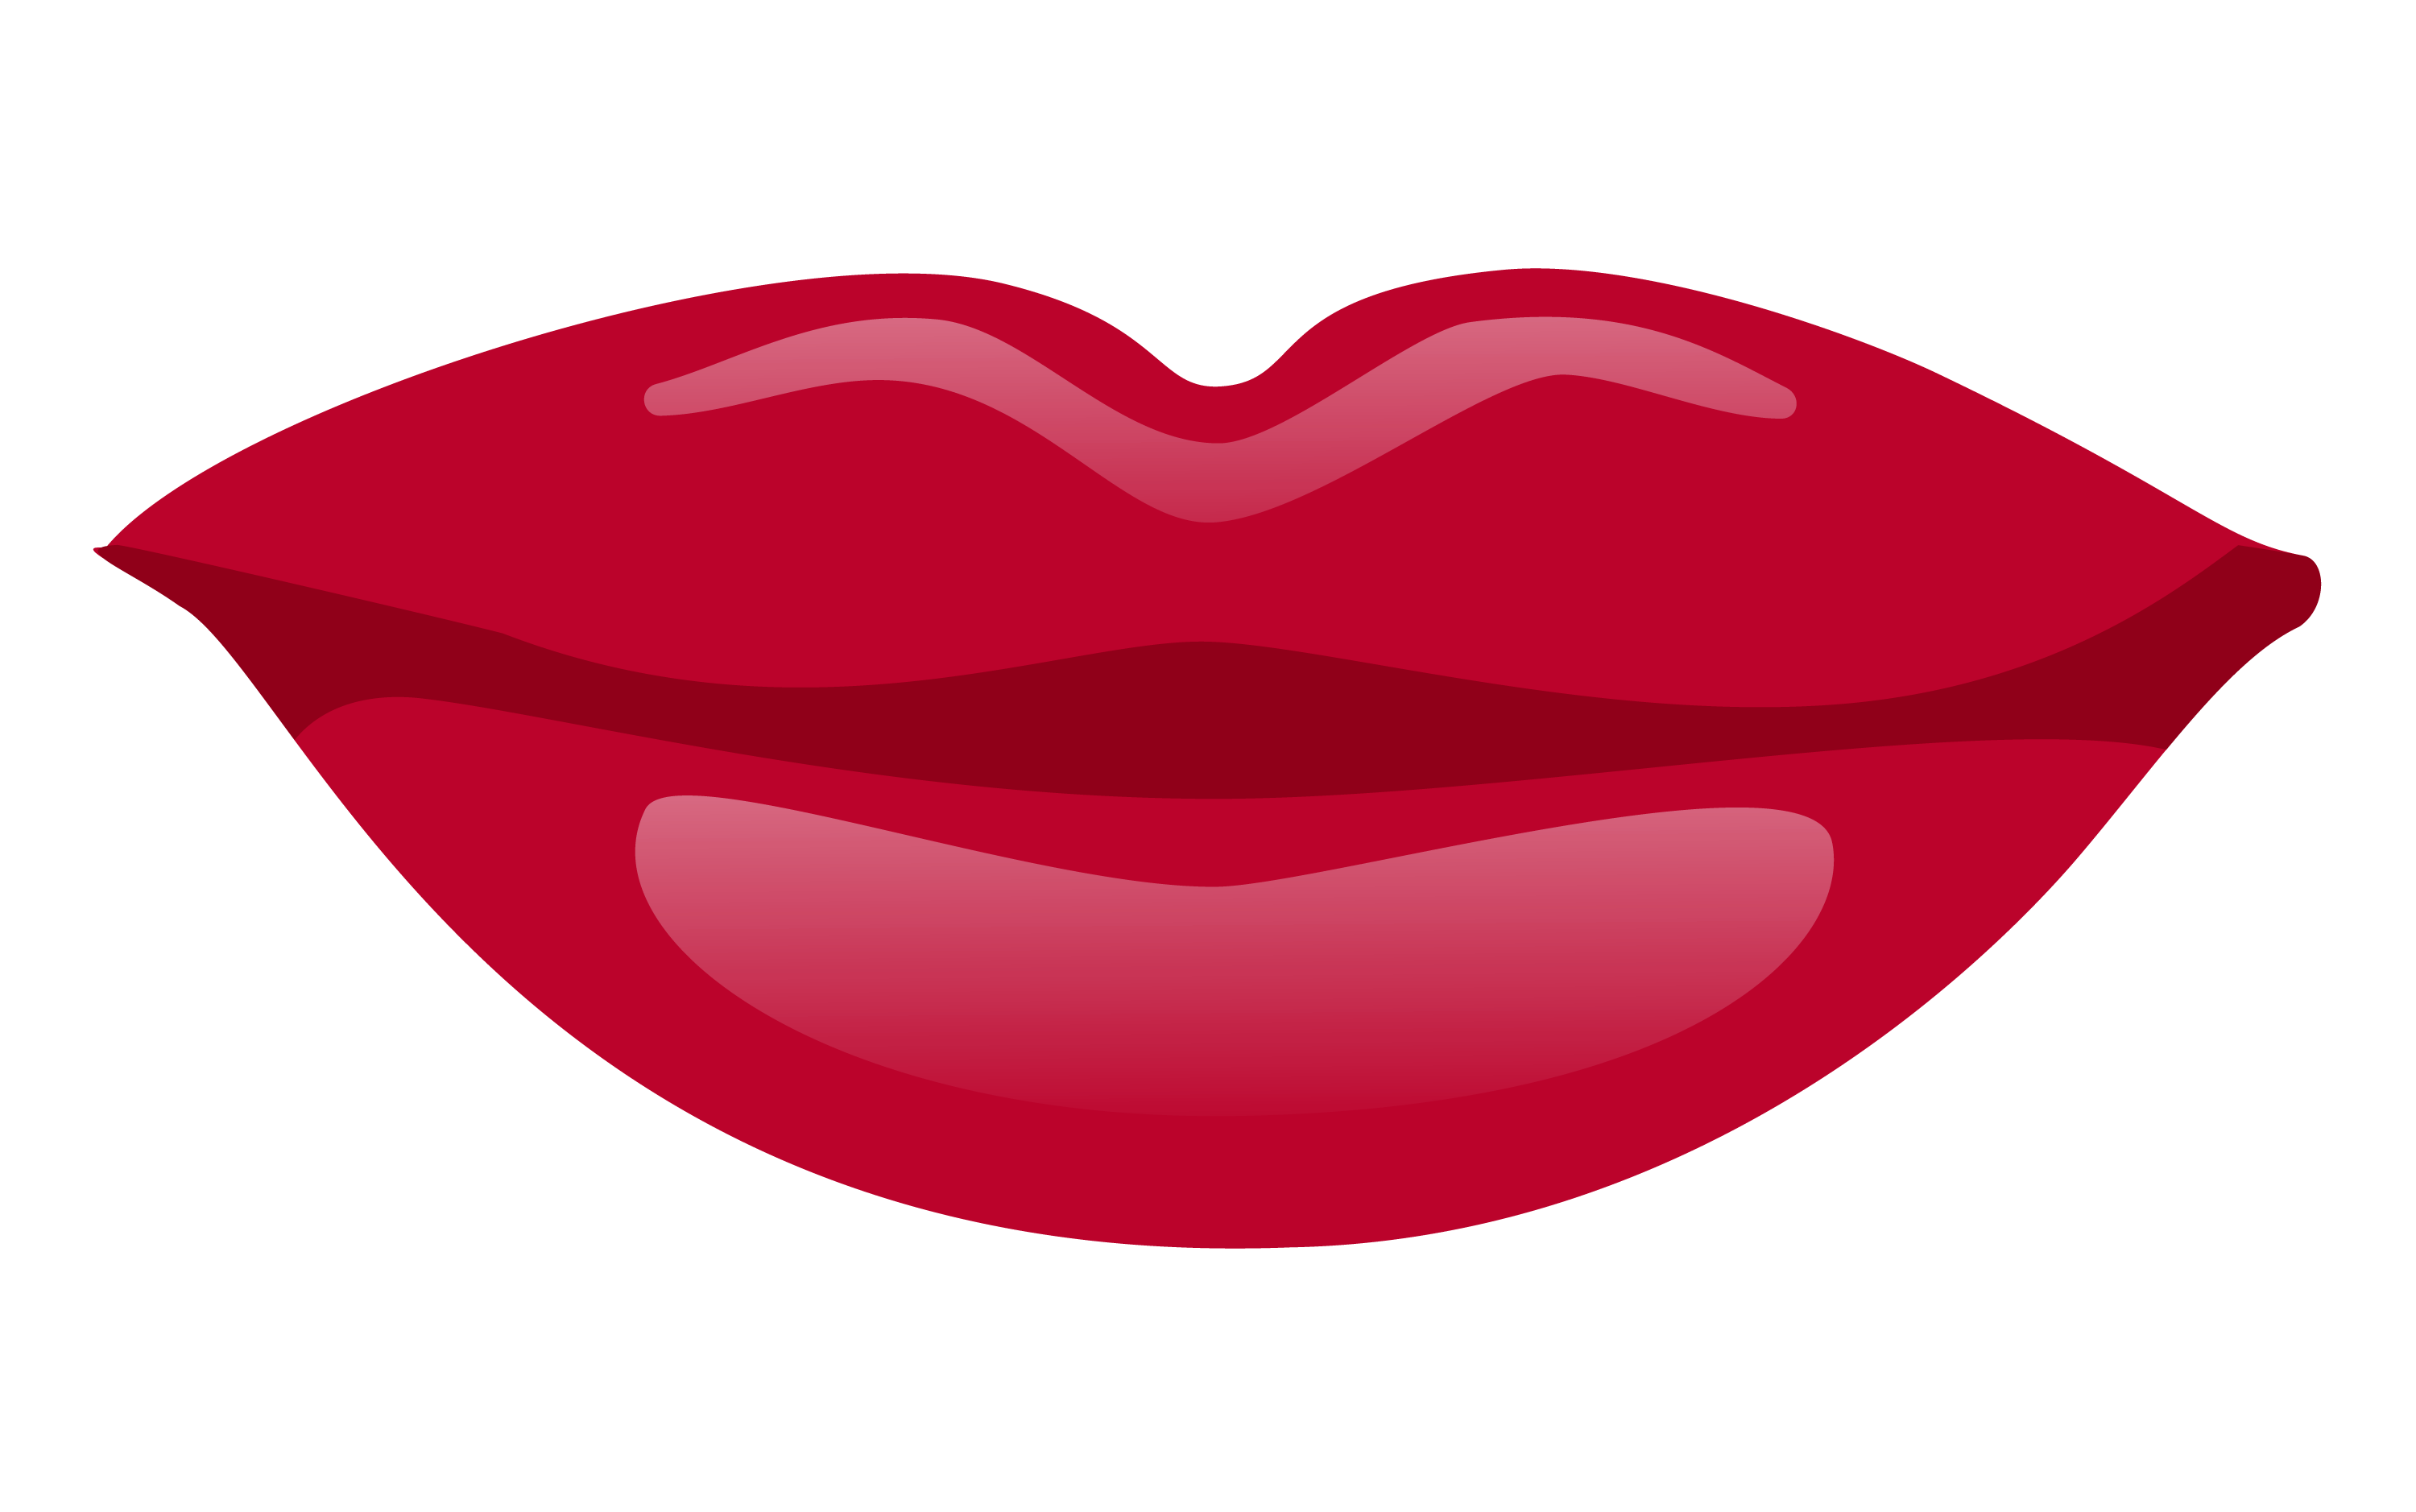 Girl lips png. Transparent image pngpix